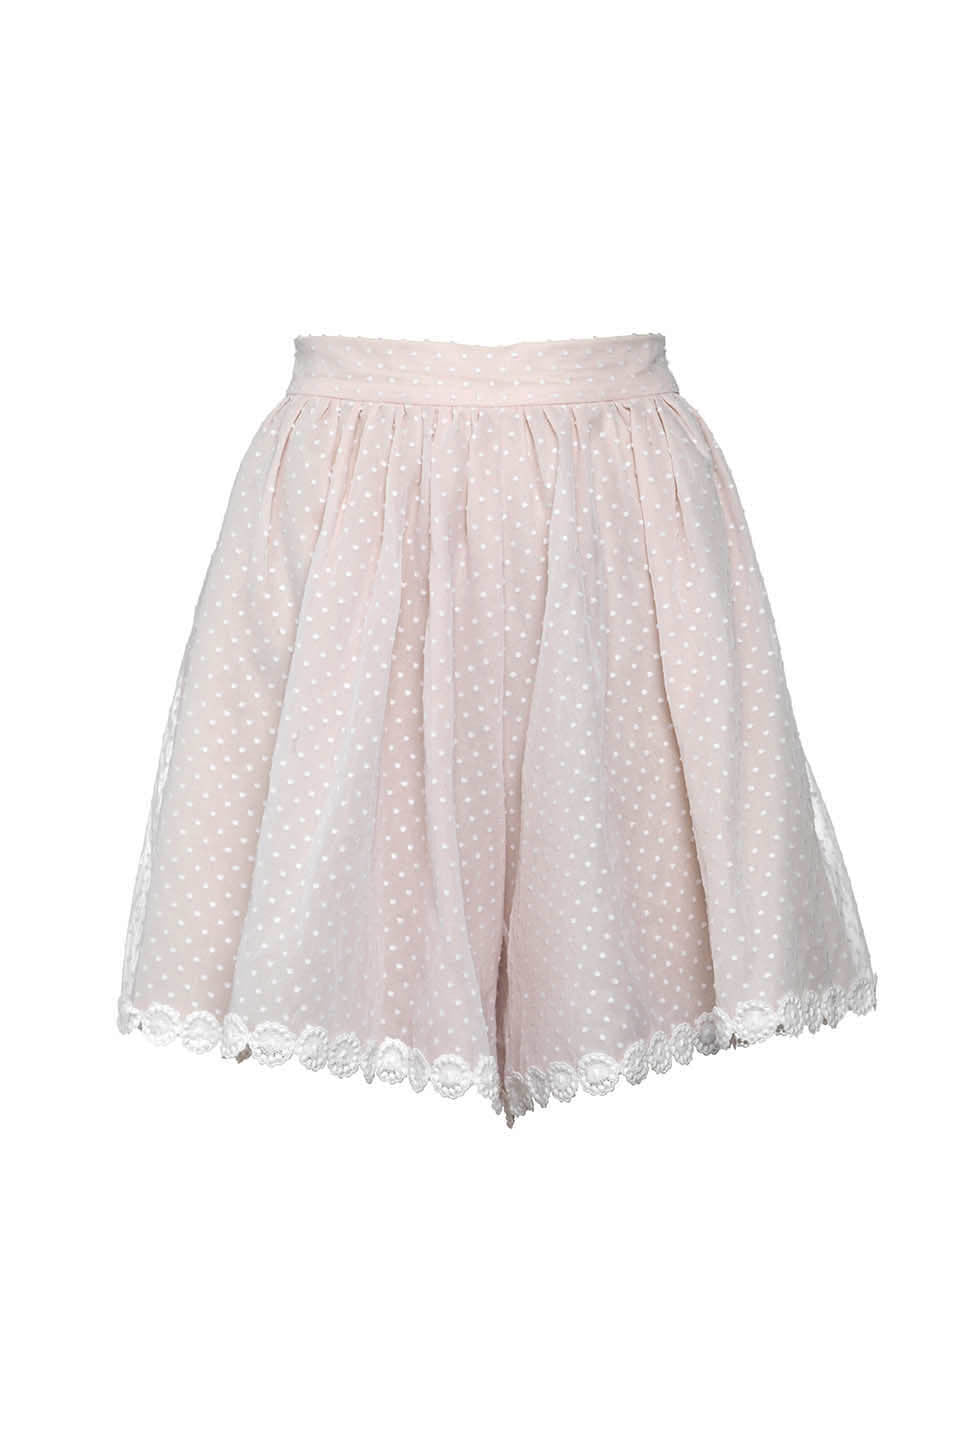 Louise Shorts - Womenswear Outlet - Madderson London